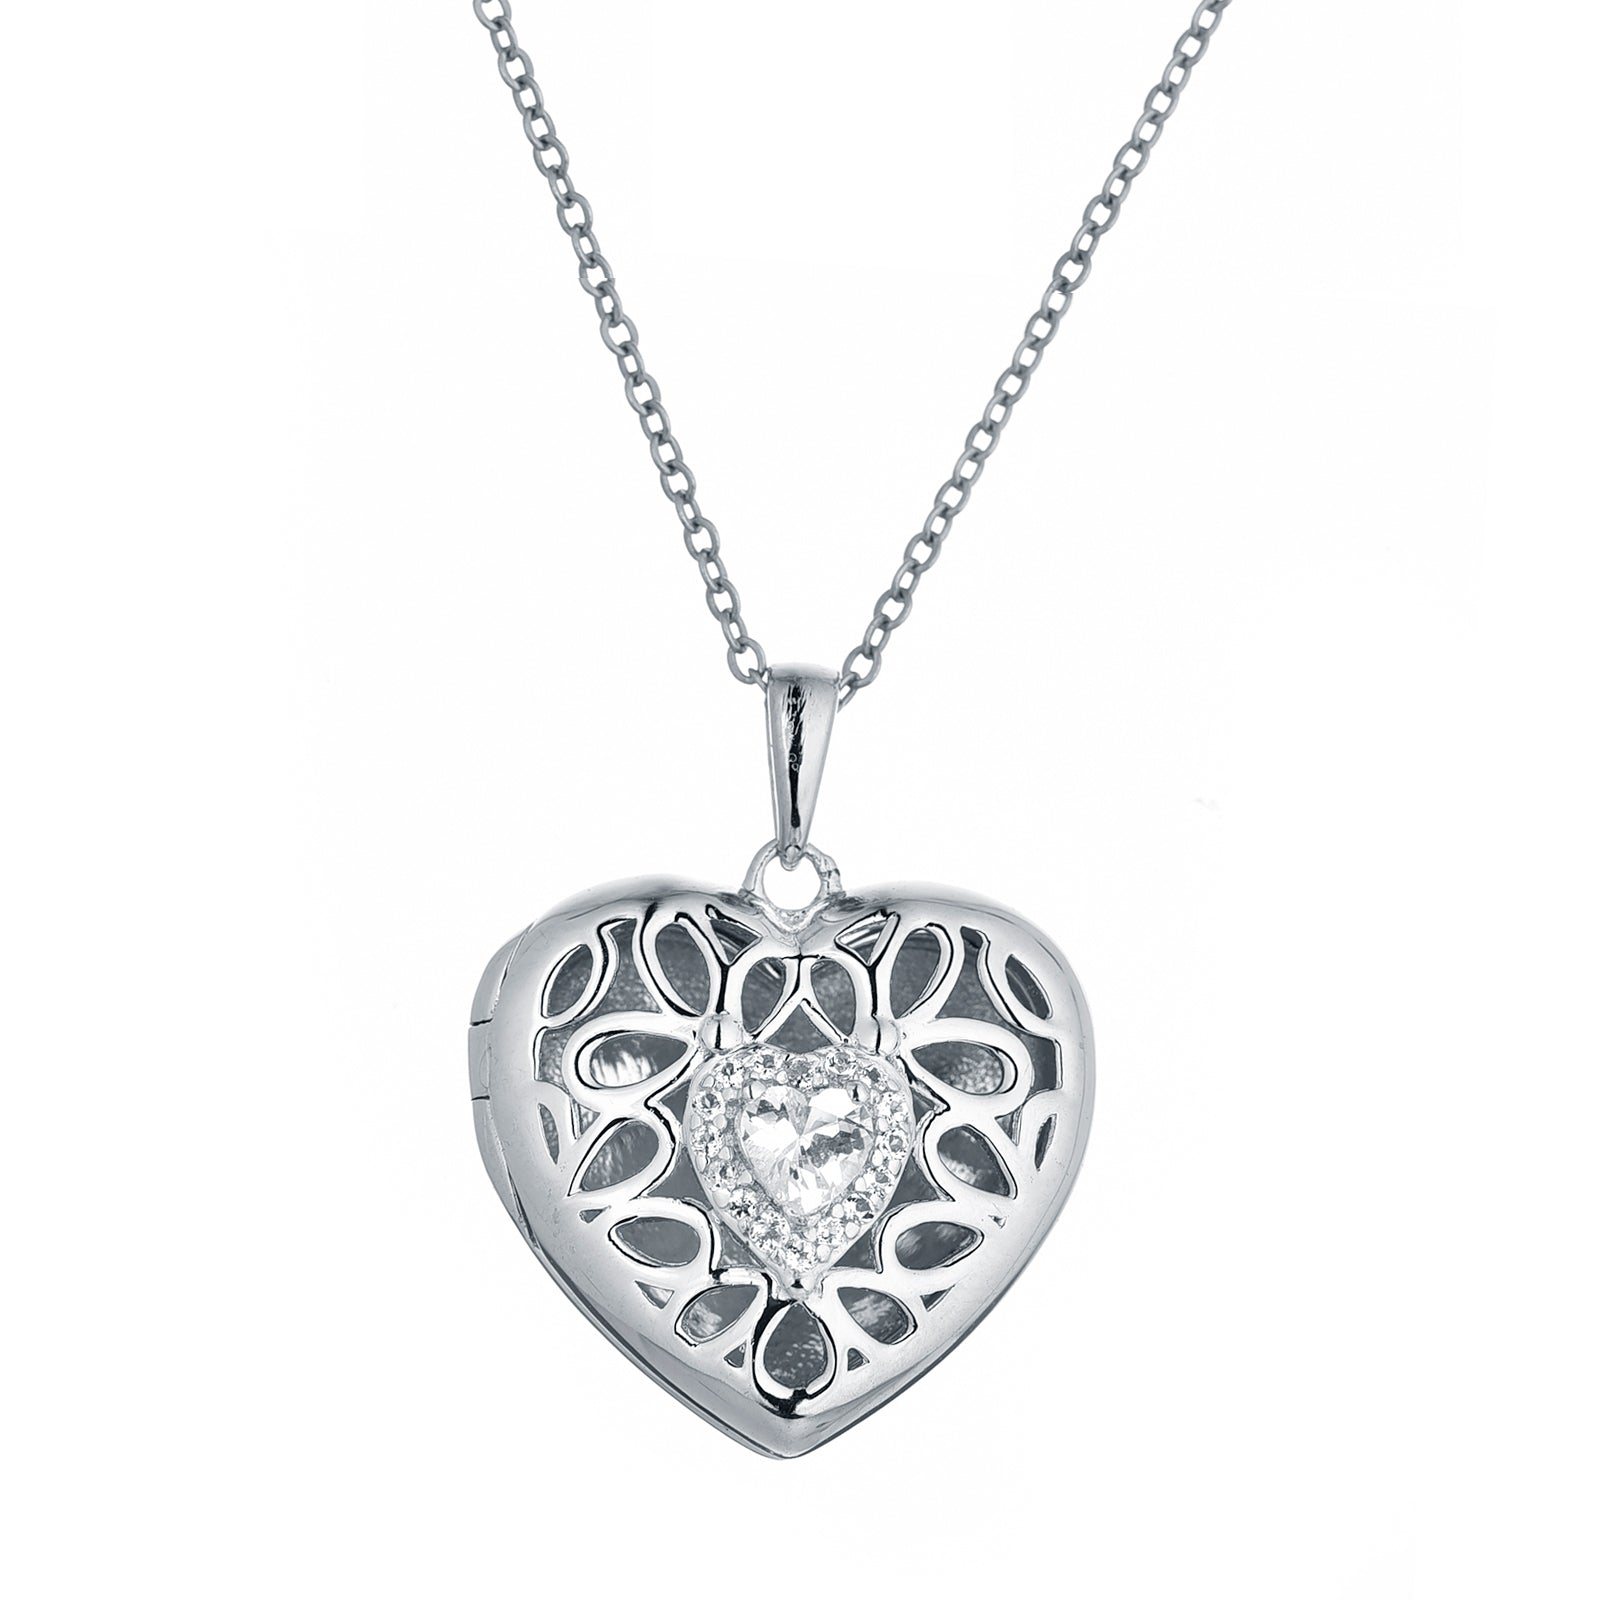 Heart Locket with White Topaz, Sterling Silver